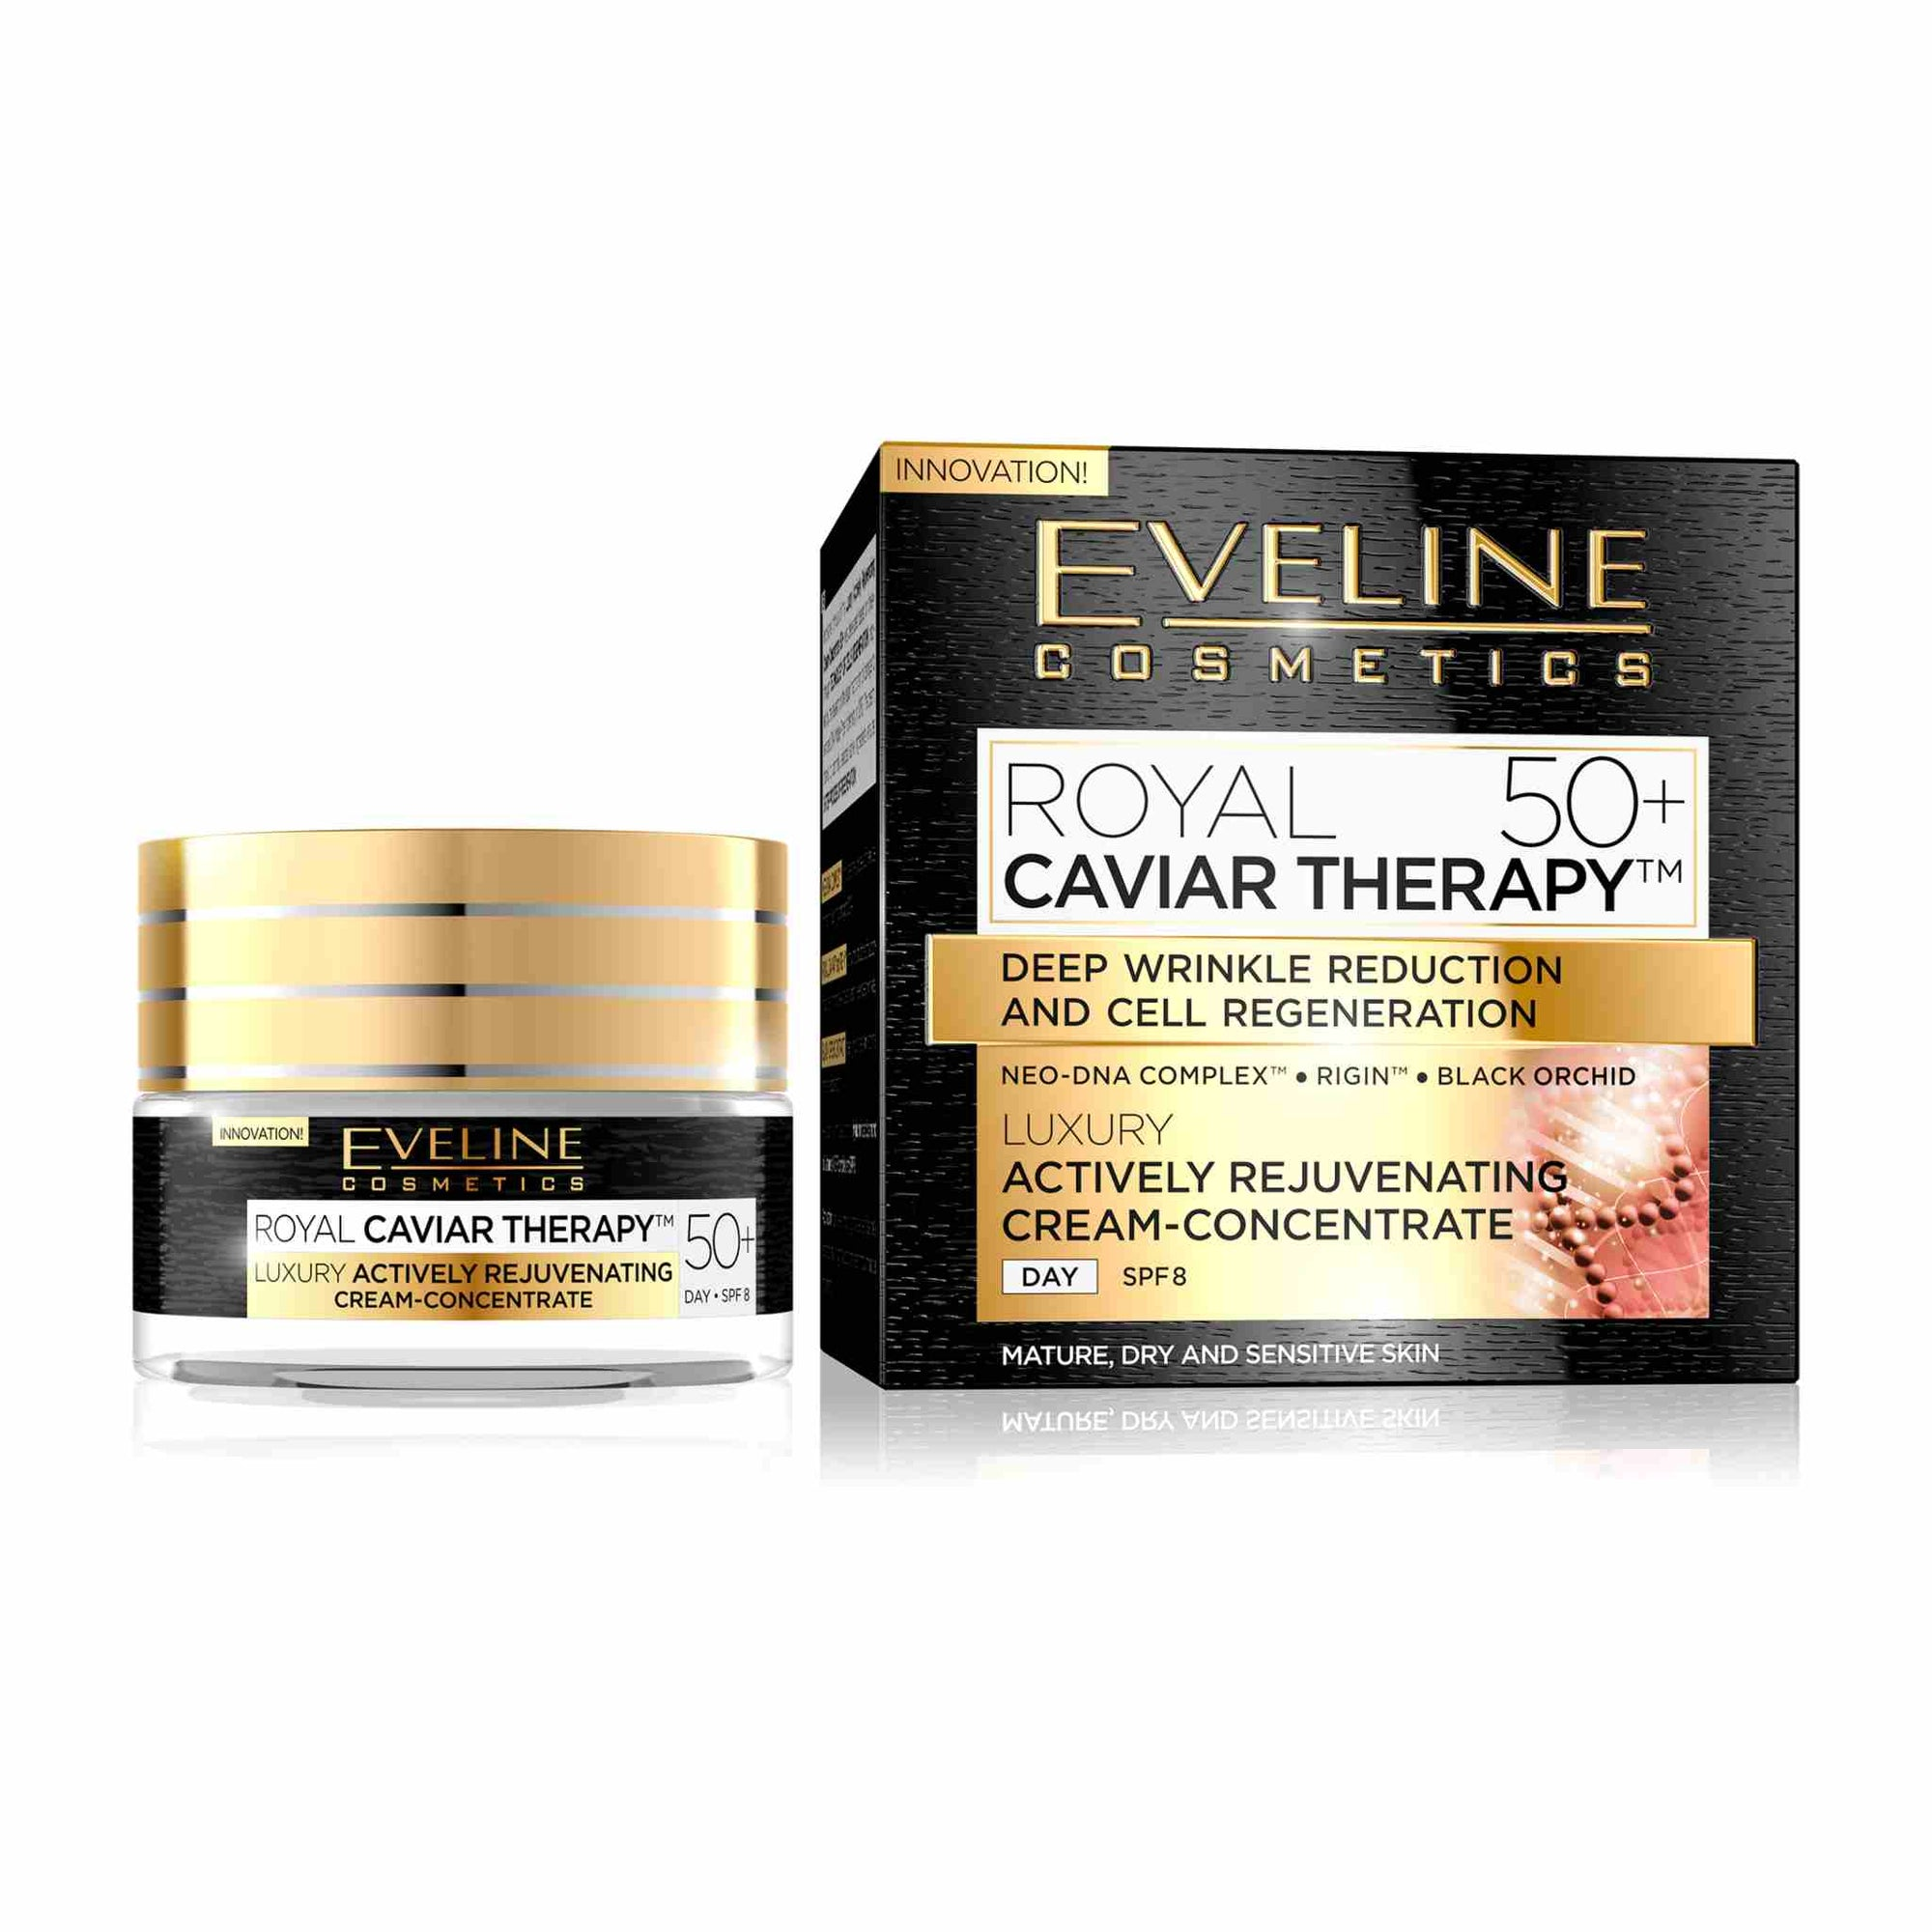 Royal Caviar Therapy Luxury Actively Rejuvenating Day Cream Concentrate 50+